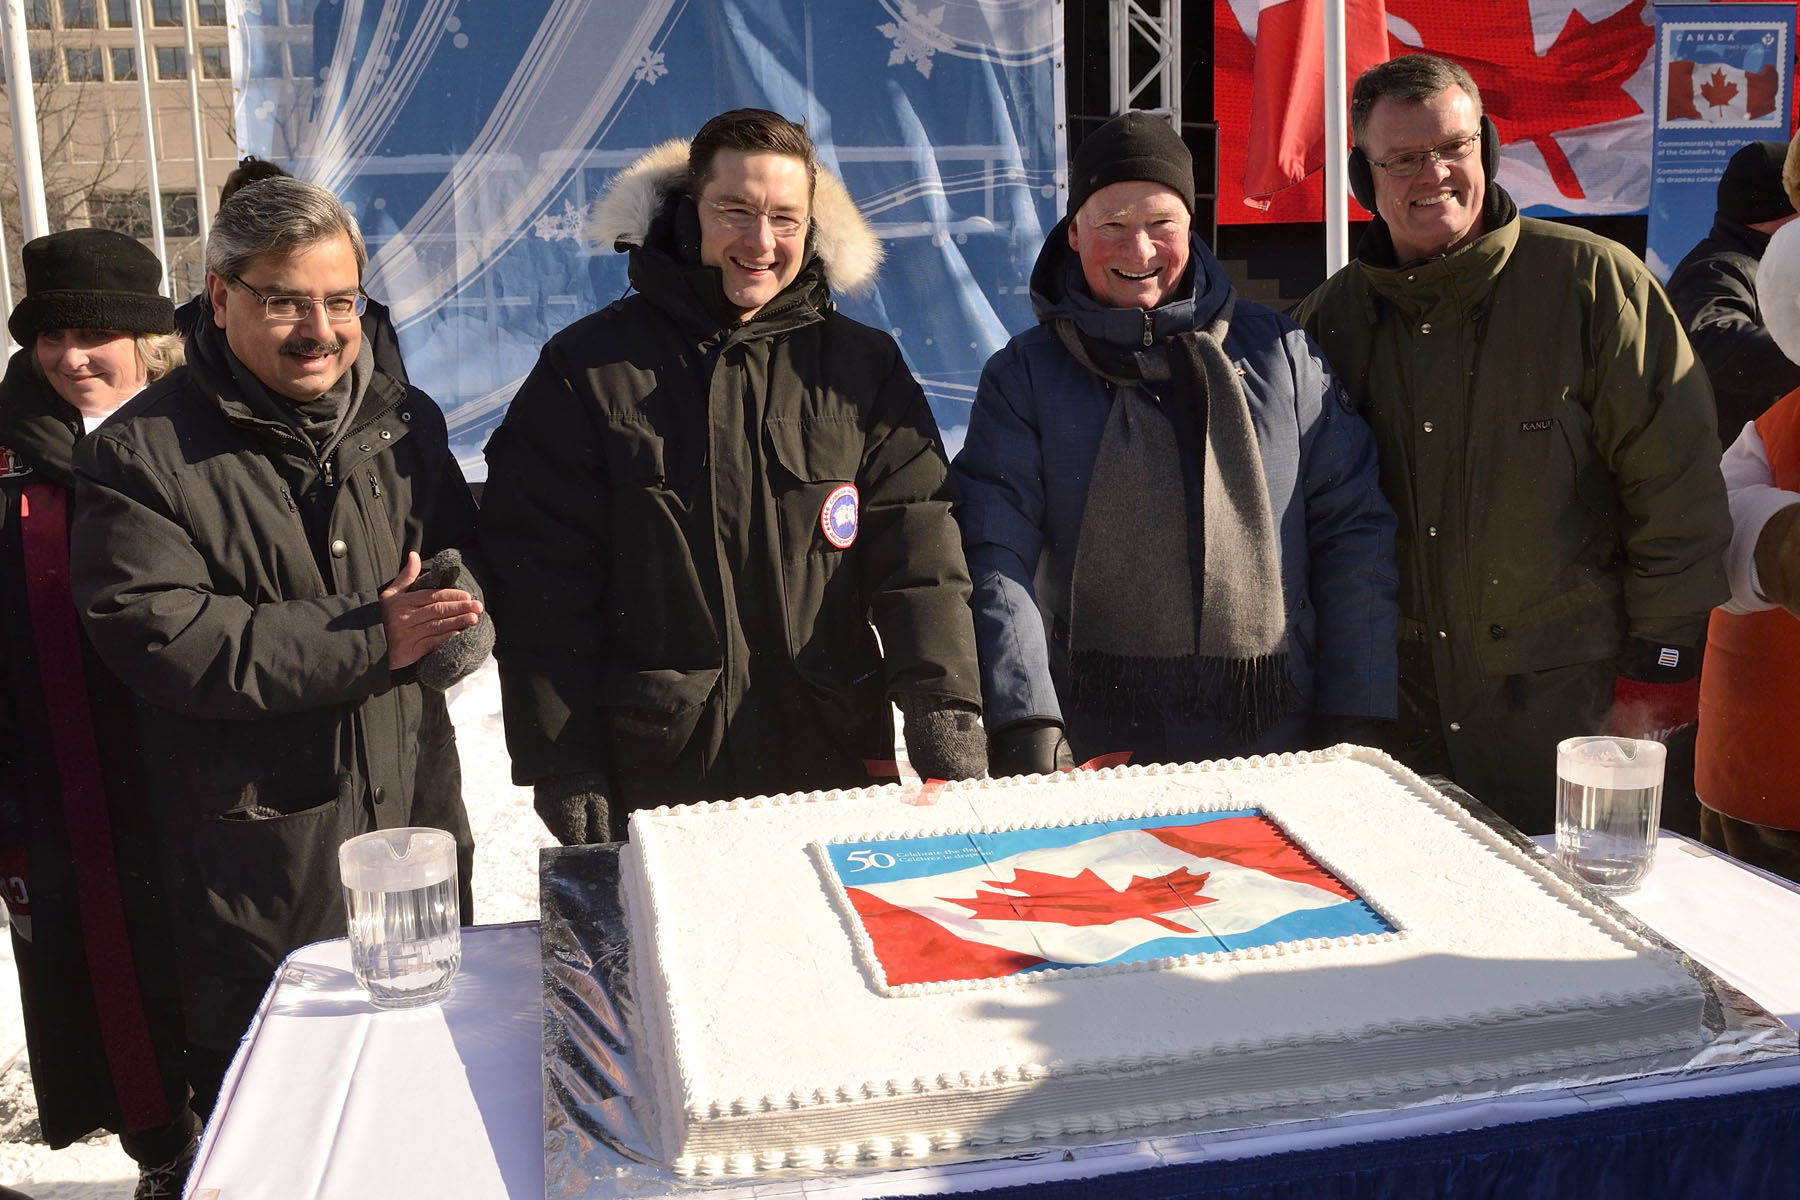 His Excellency and dignitaries cut the cake to celebrate the Canadian flag's anniversary.